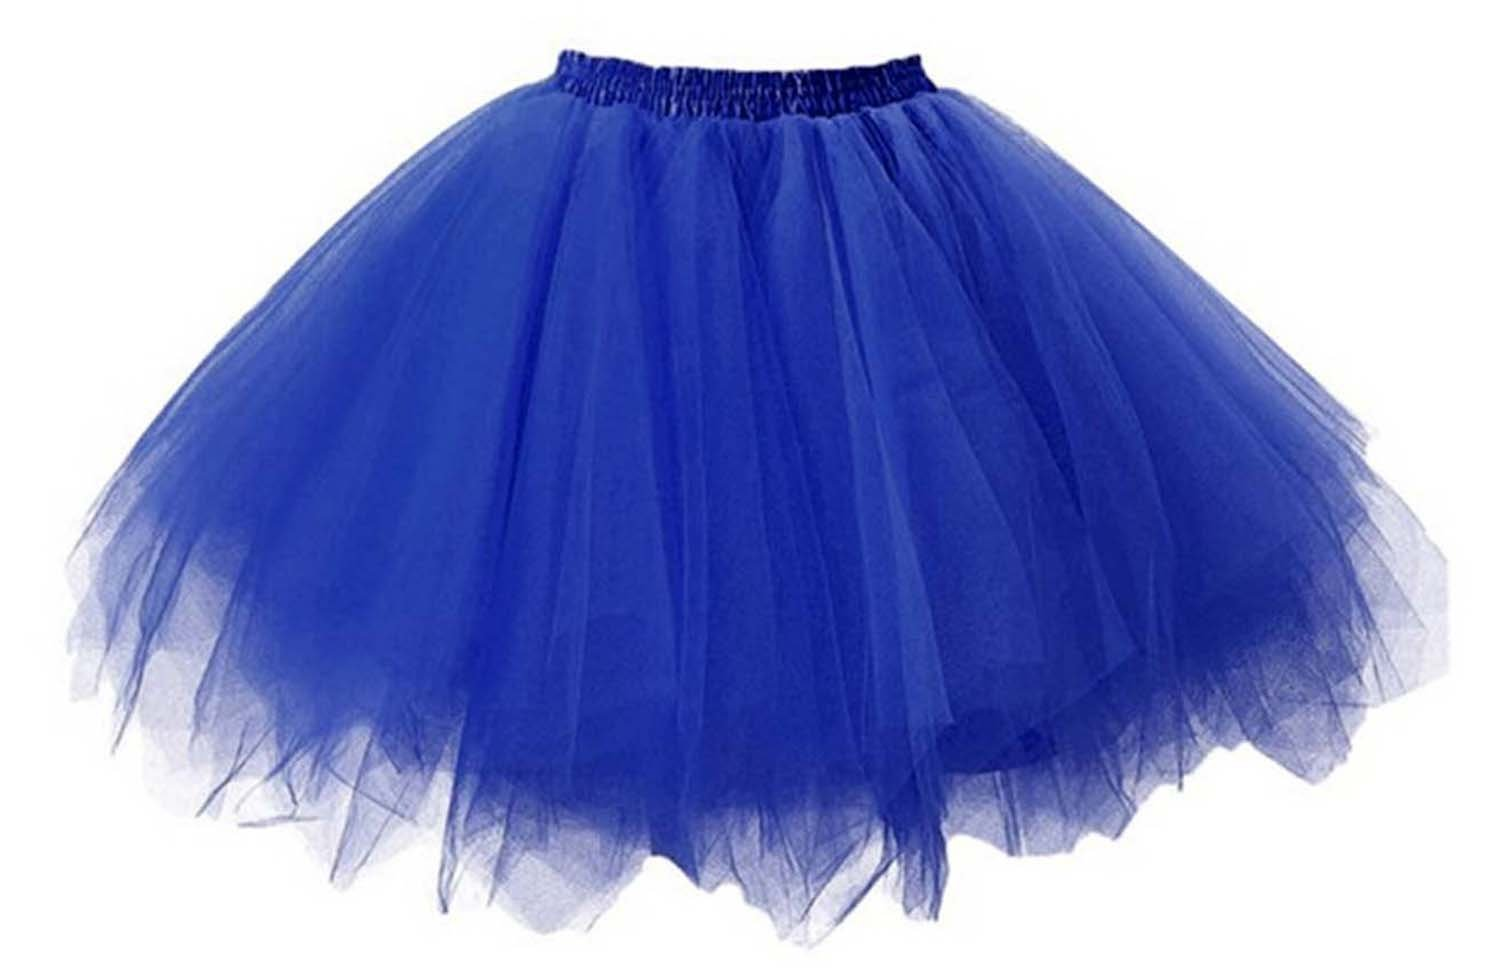 Fanhao Lace Tutu Skirt Half Dress Underskirt Short for Prom,Cosplay,Show,Ballet Dancing,Blue